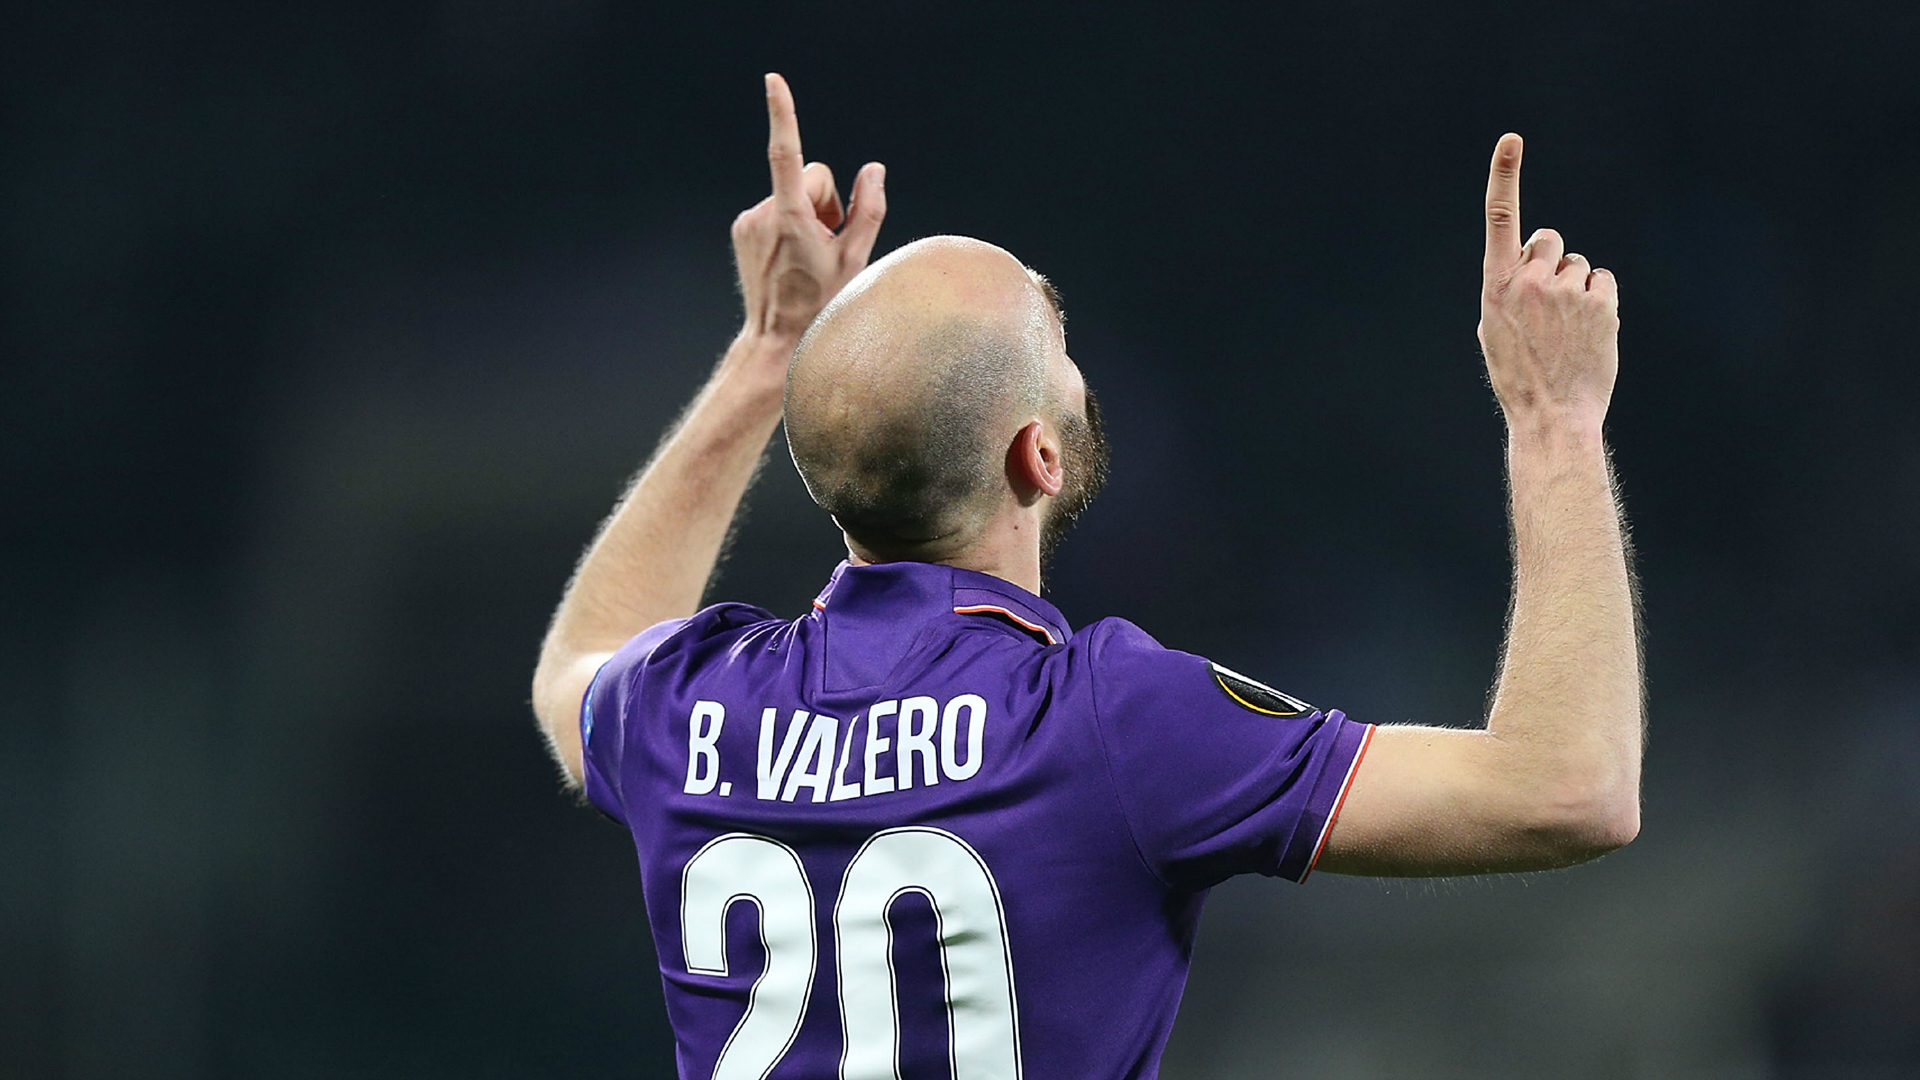 Borja Valero joins Inter from Fiorentina